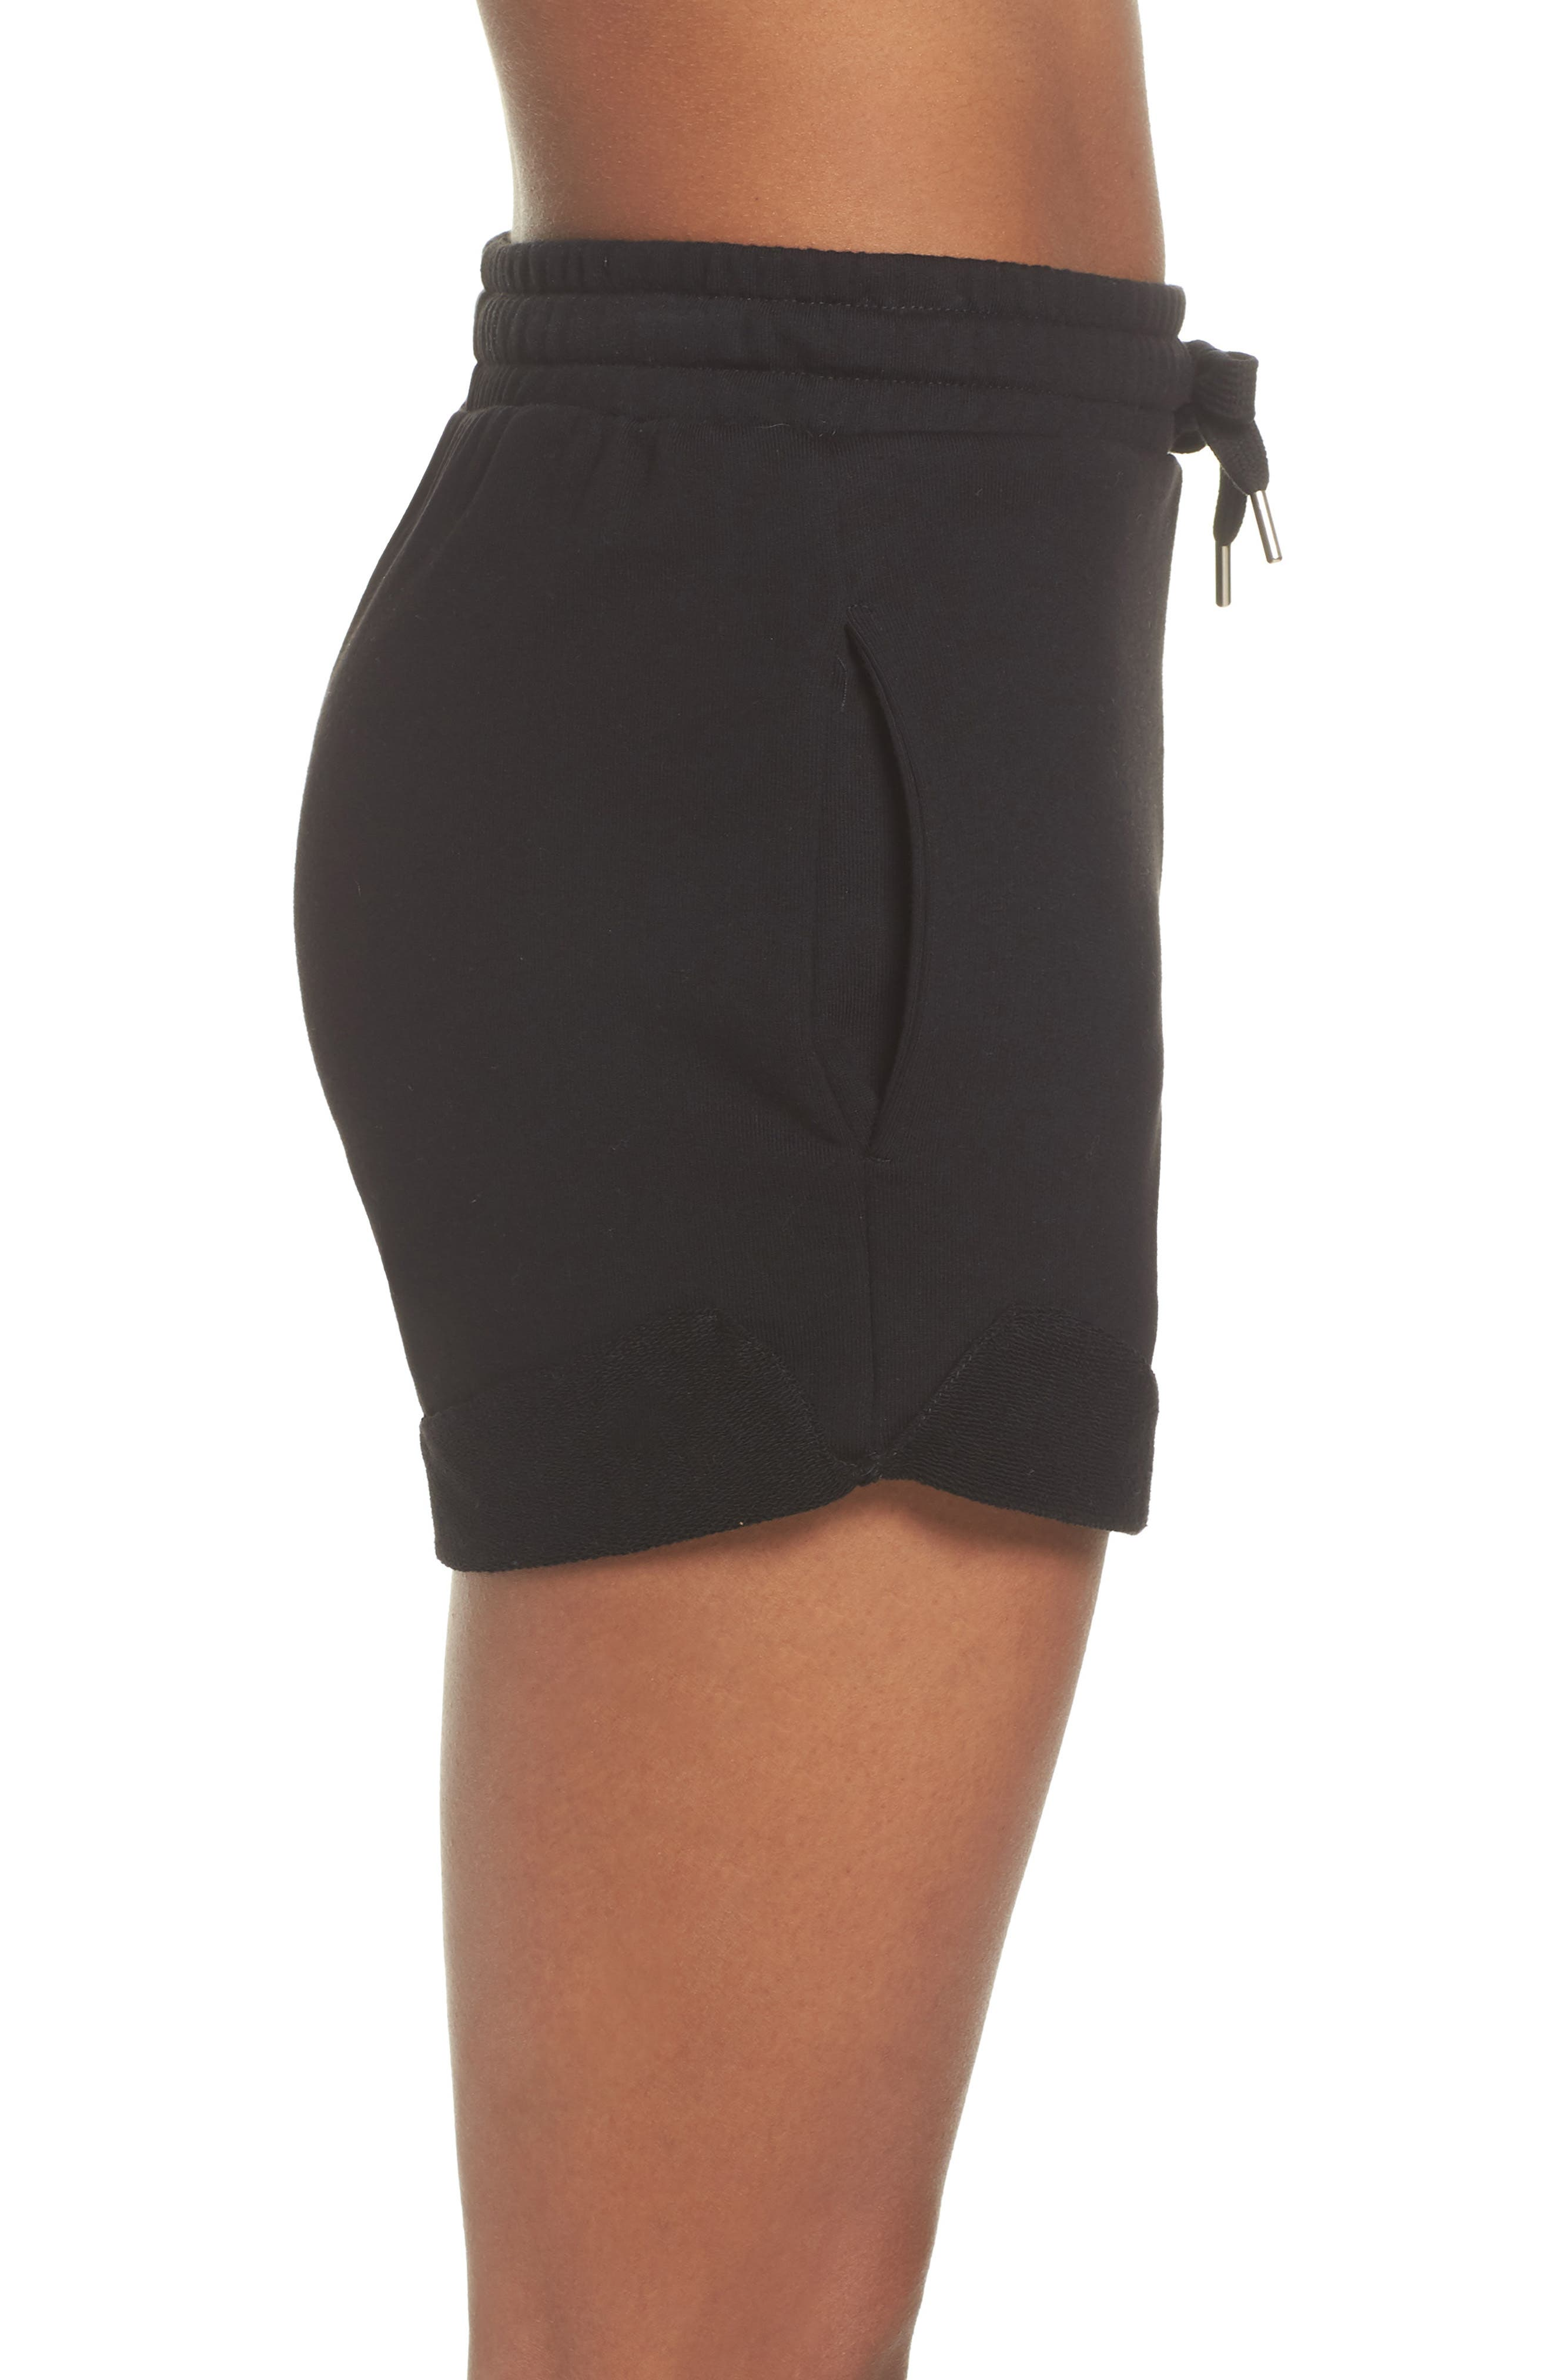 French Terry High Waist Shorts,                             Alternate thumbnail 3, color,                             002